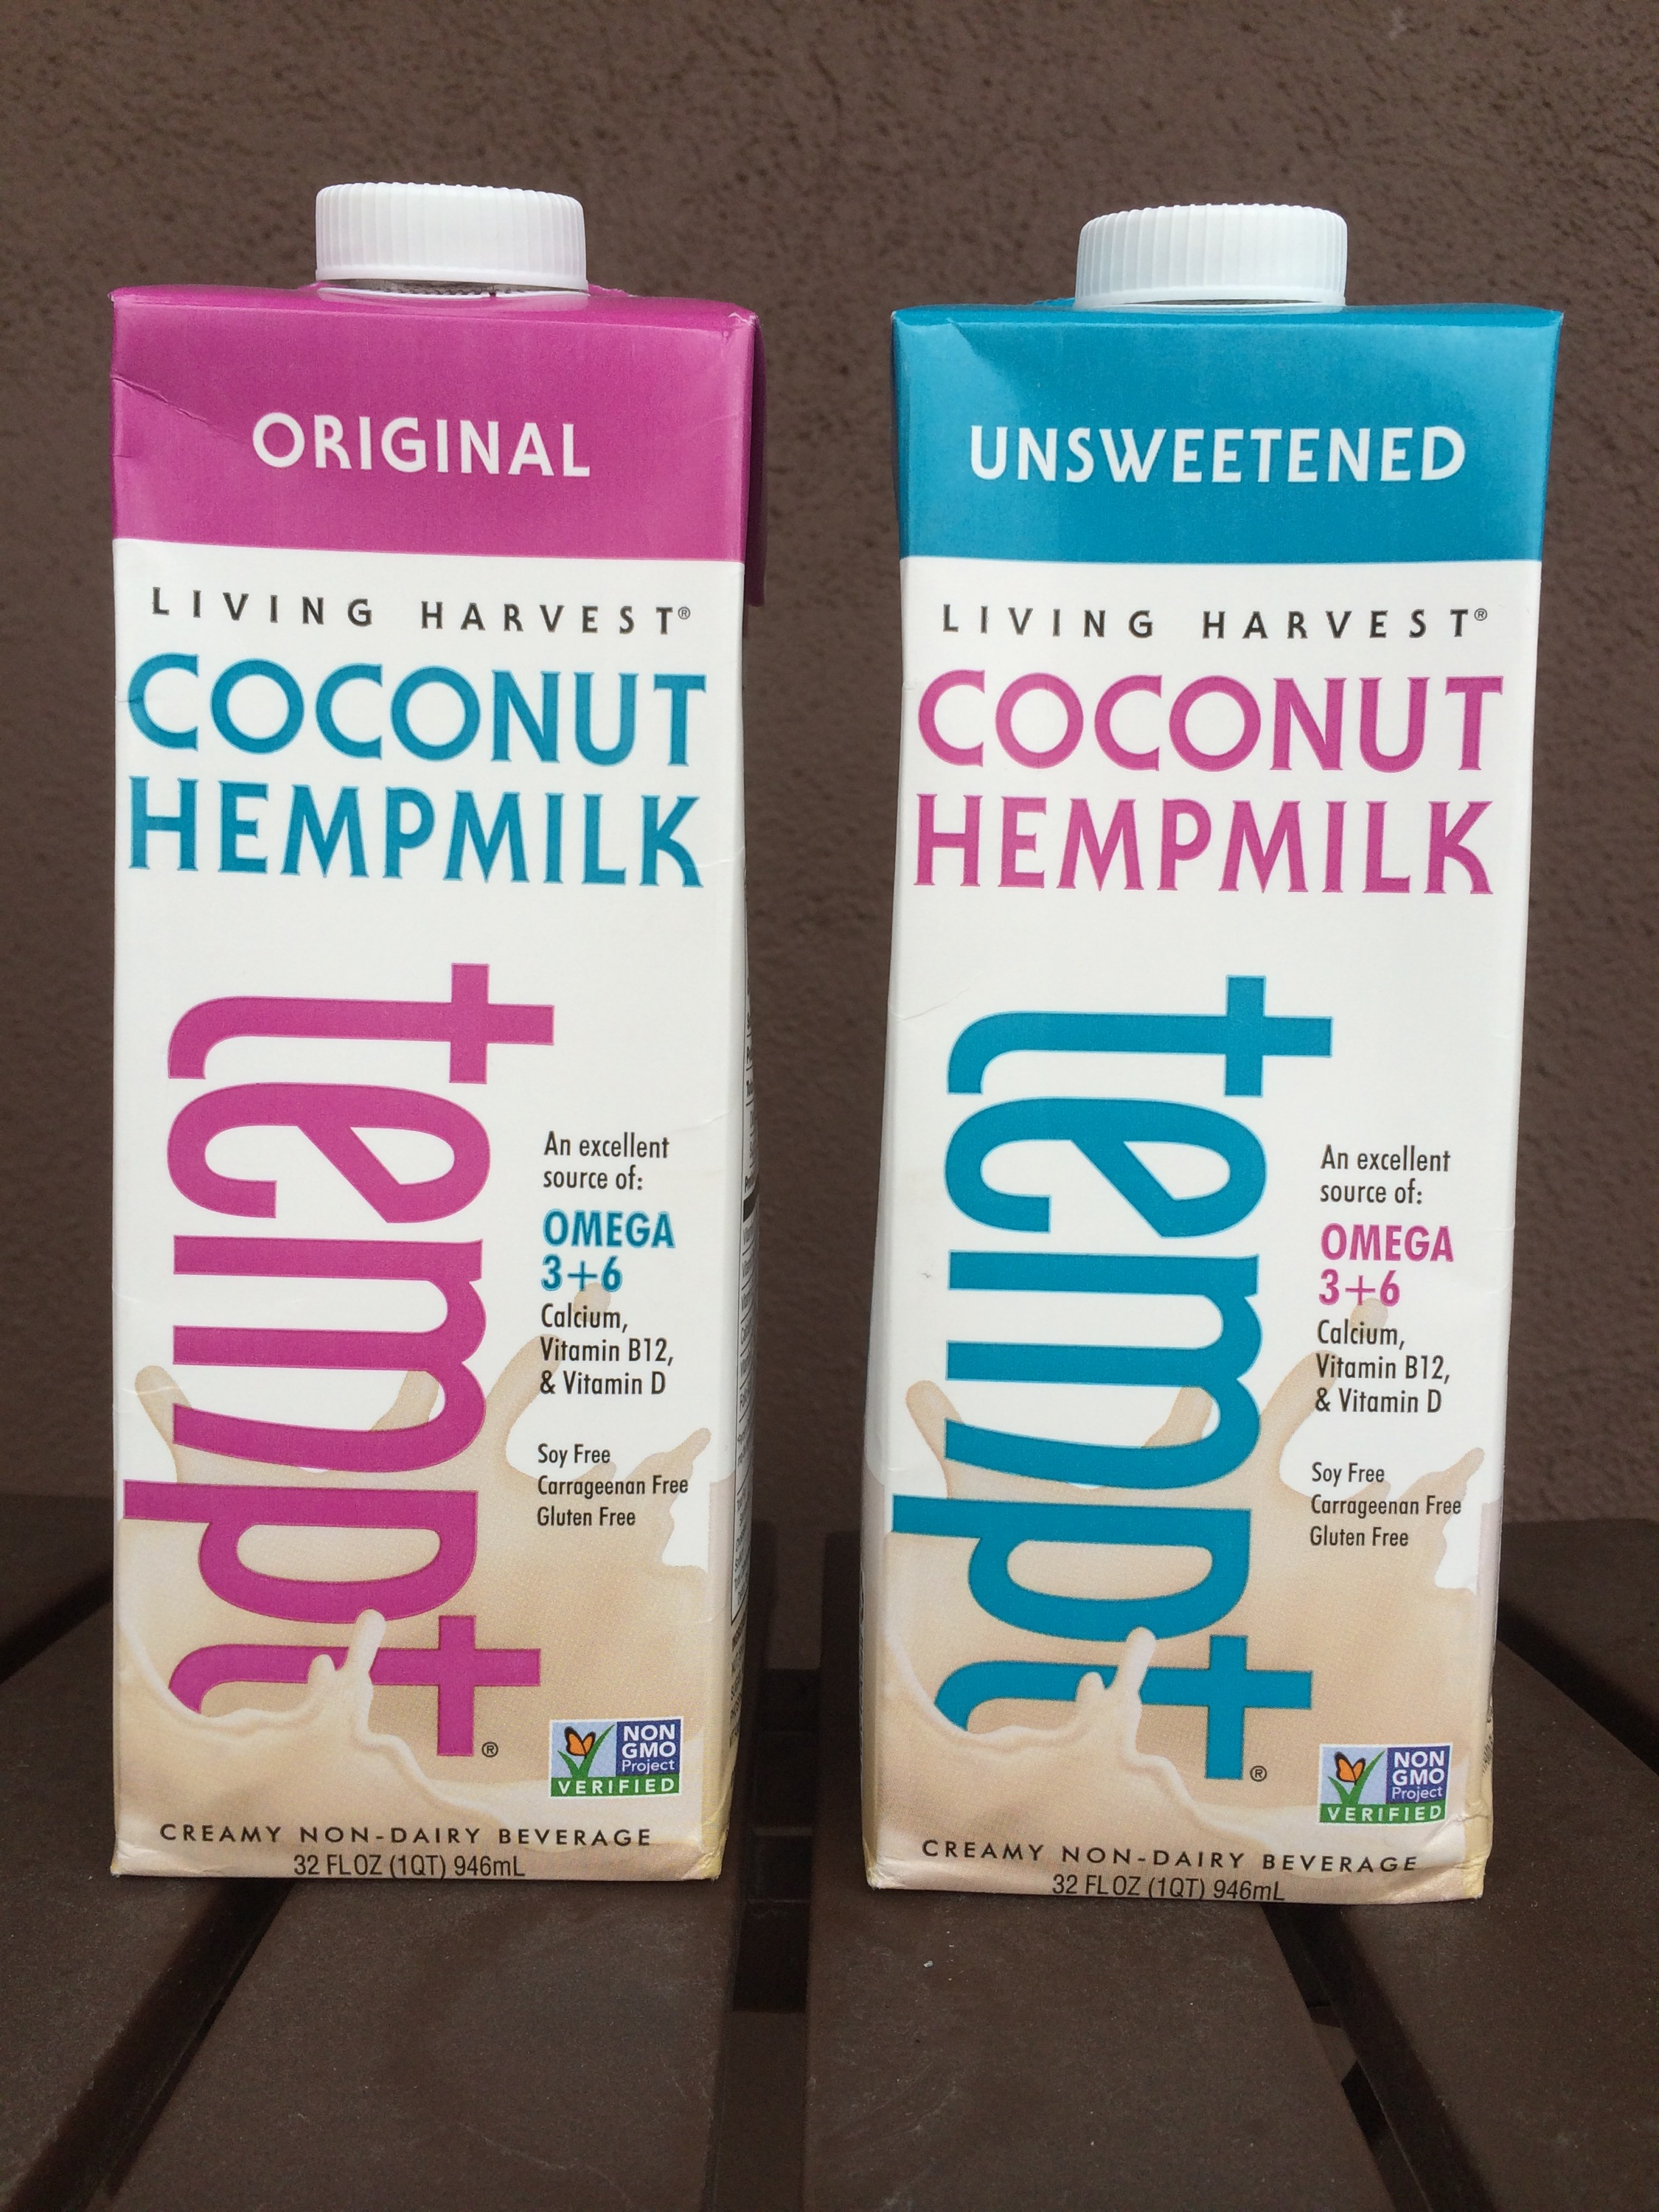 Food Review – Living Harvest Tempt Coconut Hemp Milk (Original & Unsweetened) – Lazy Girl Vegan